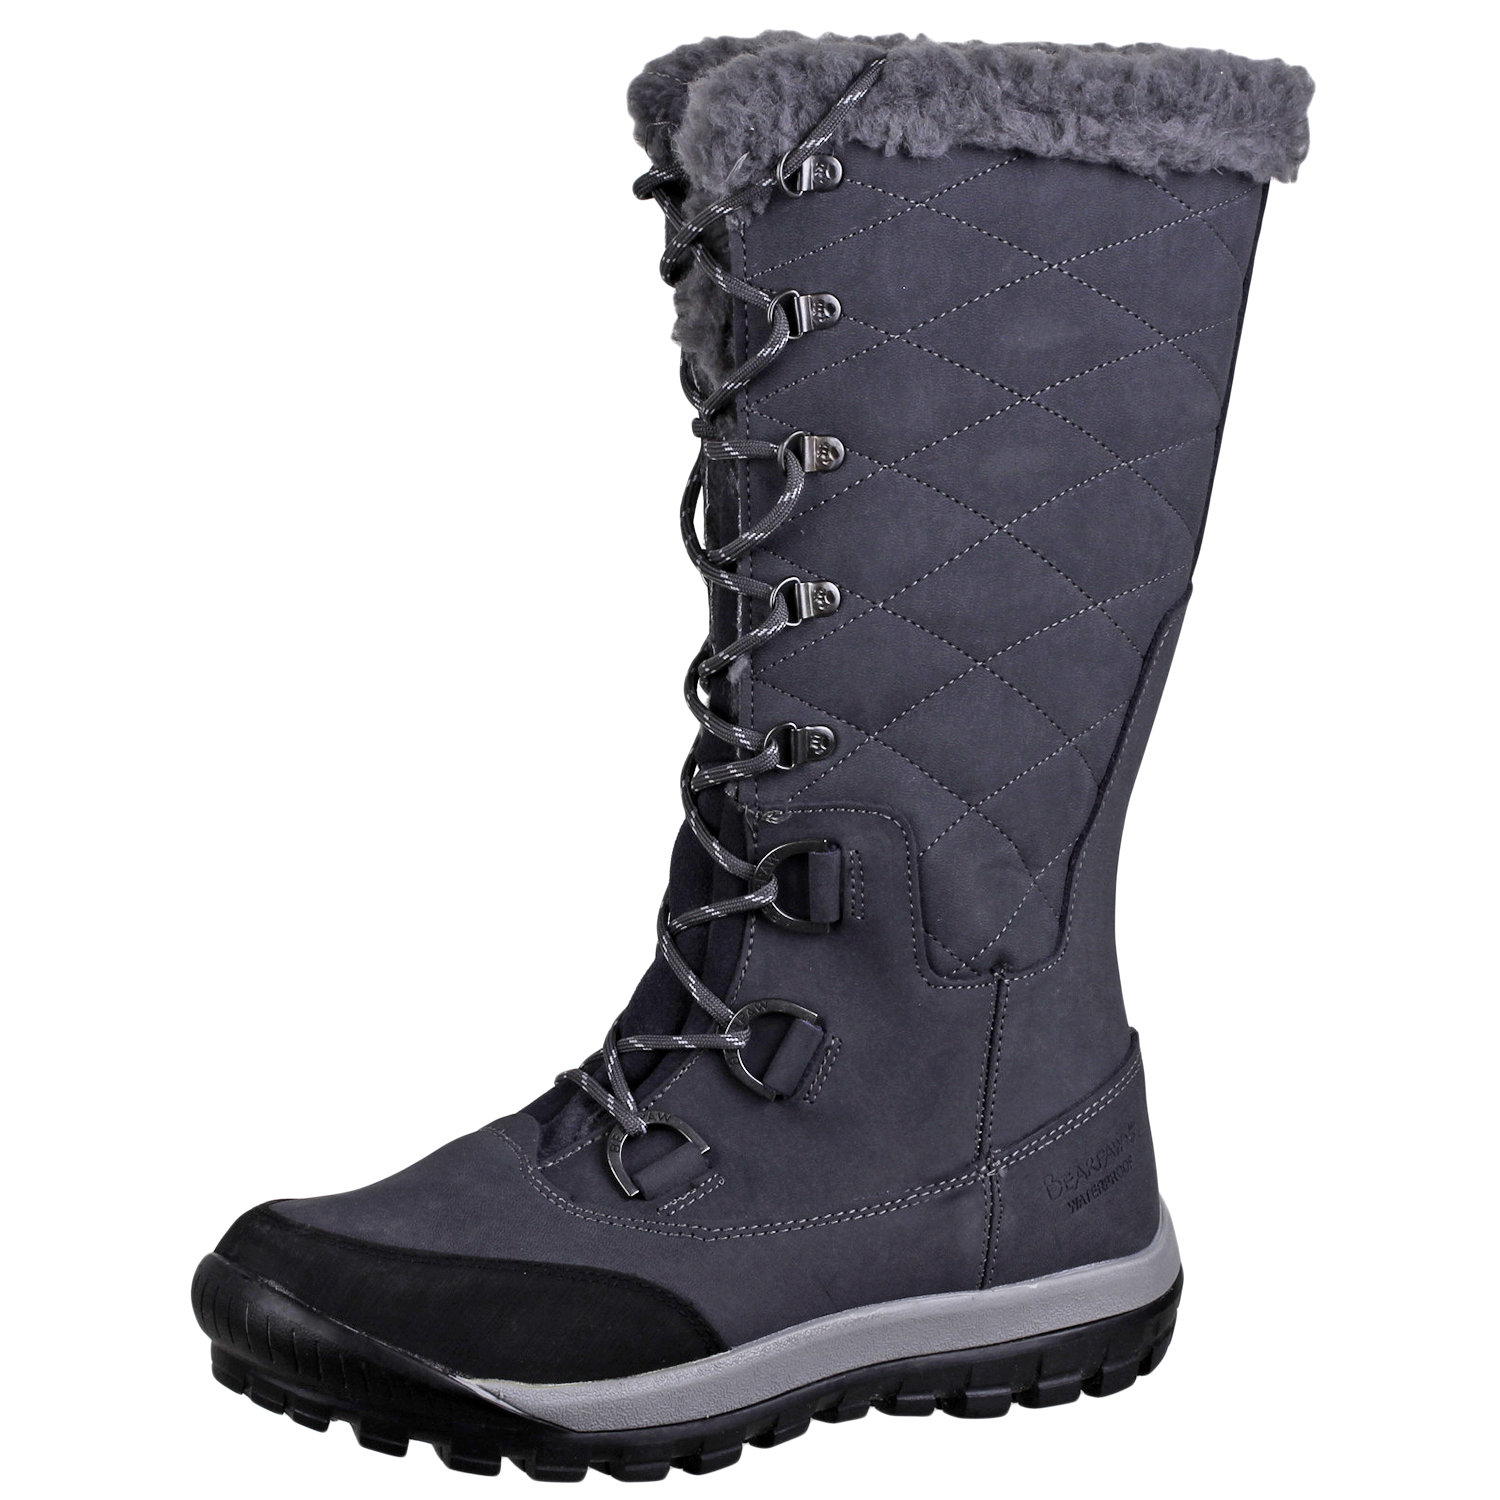 4dc11a8227a Details about BEARPAW Women's Isabella Waterproof Boot Shoes 1705W Charcoal  9